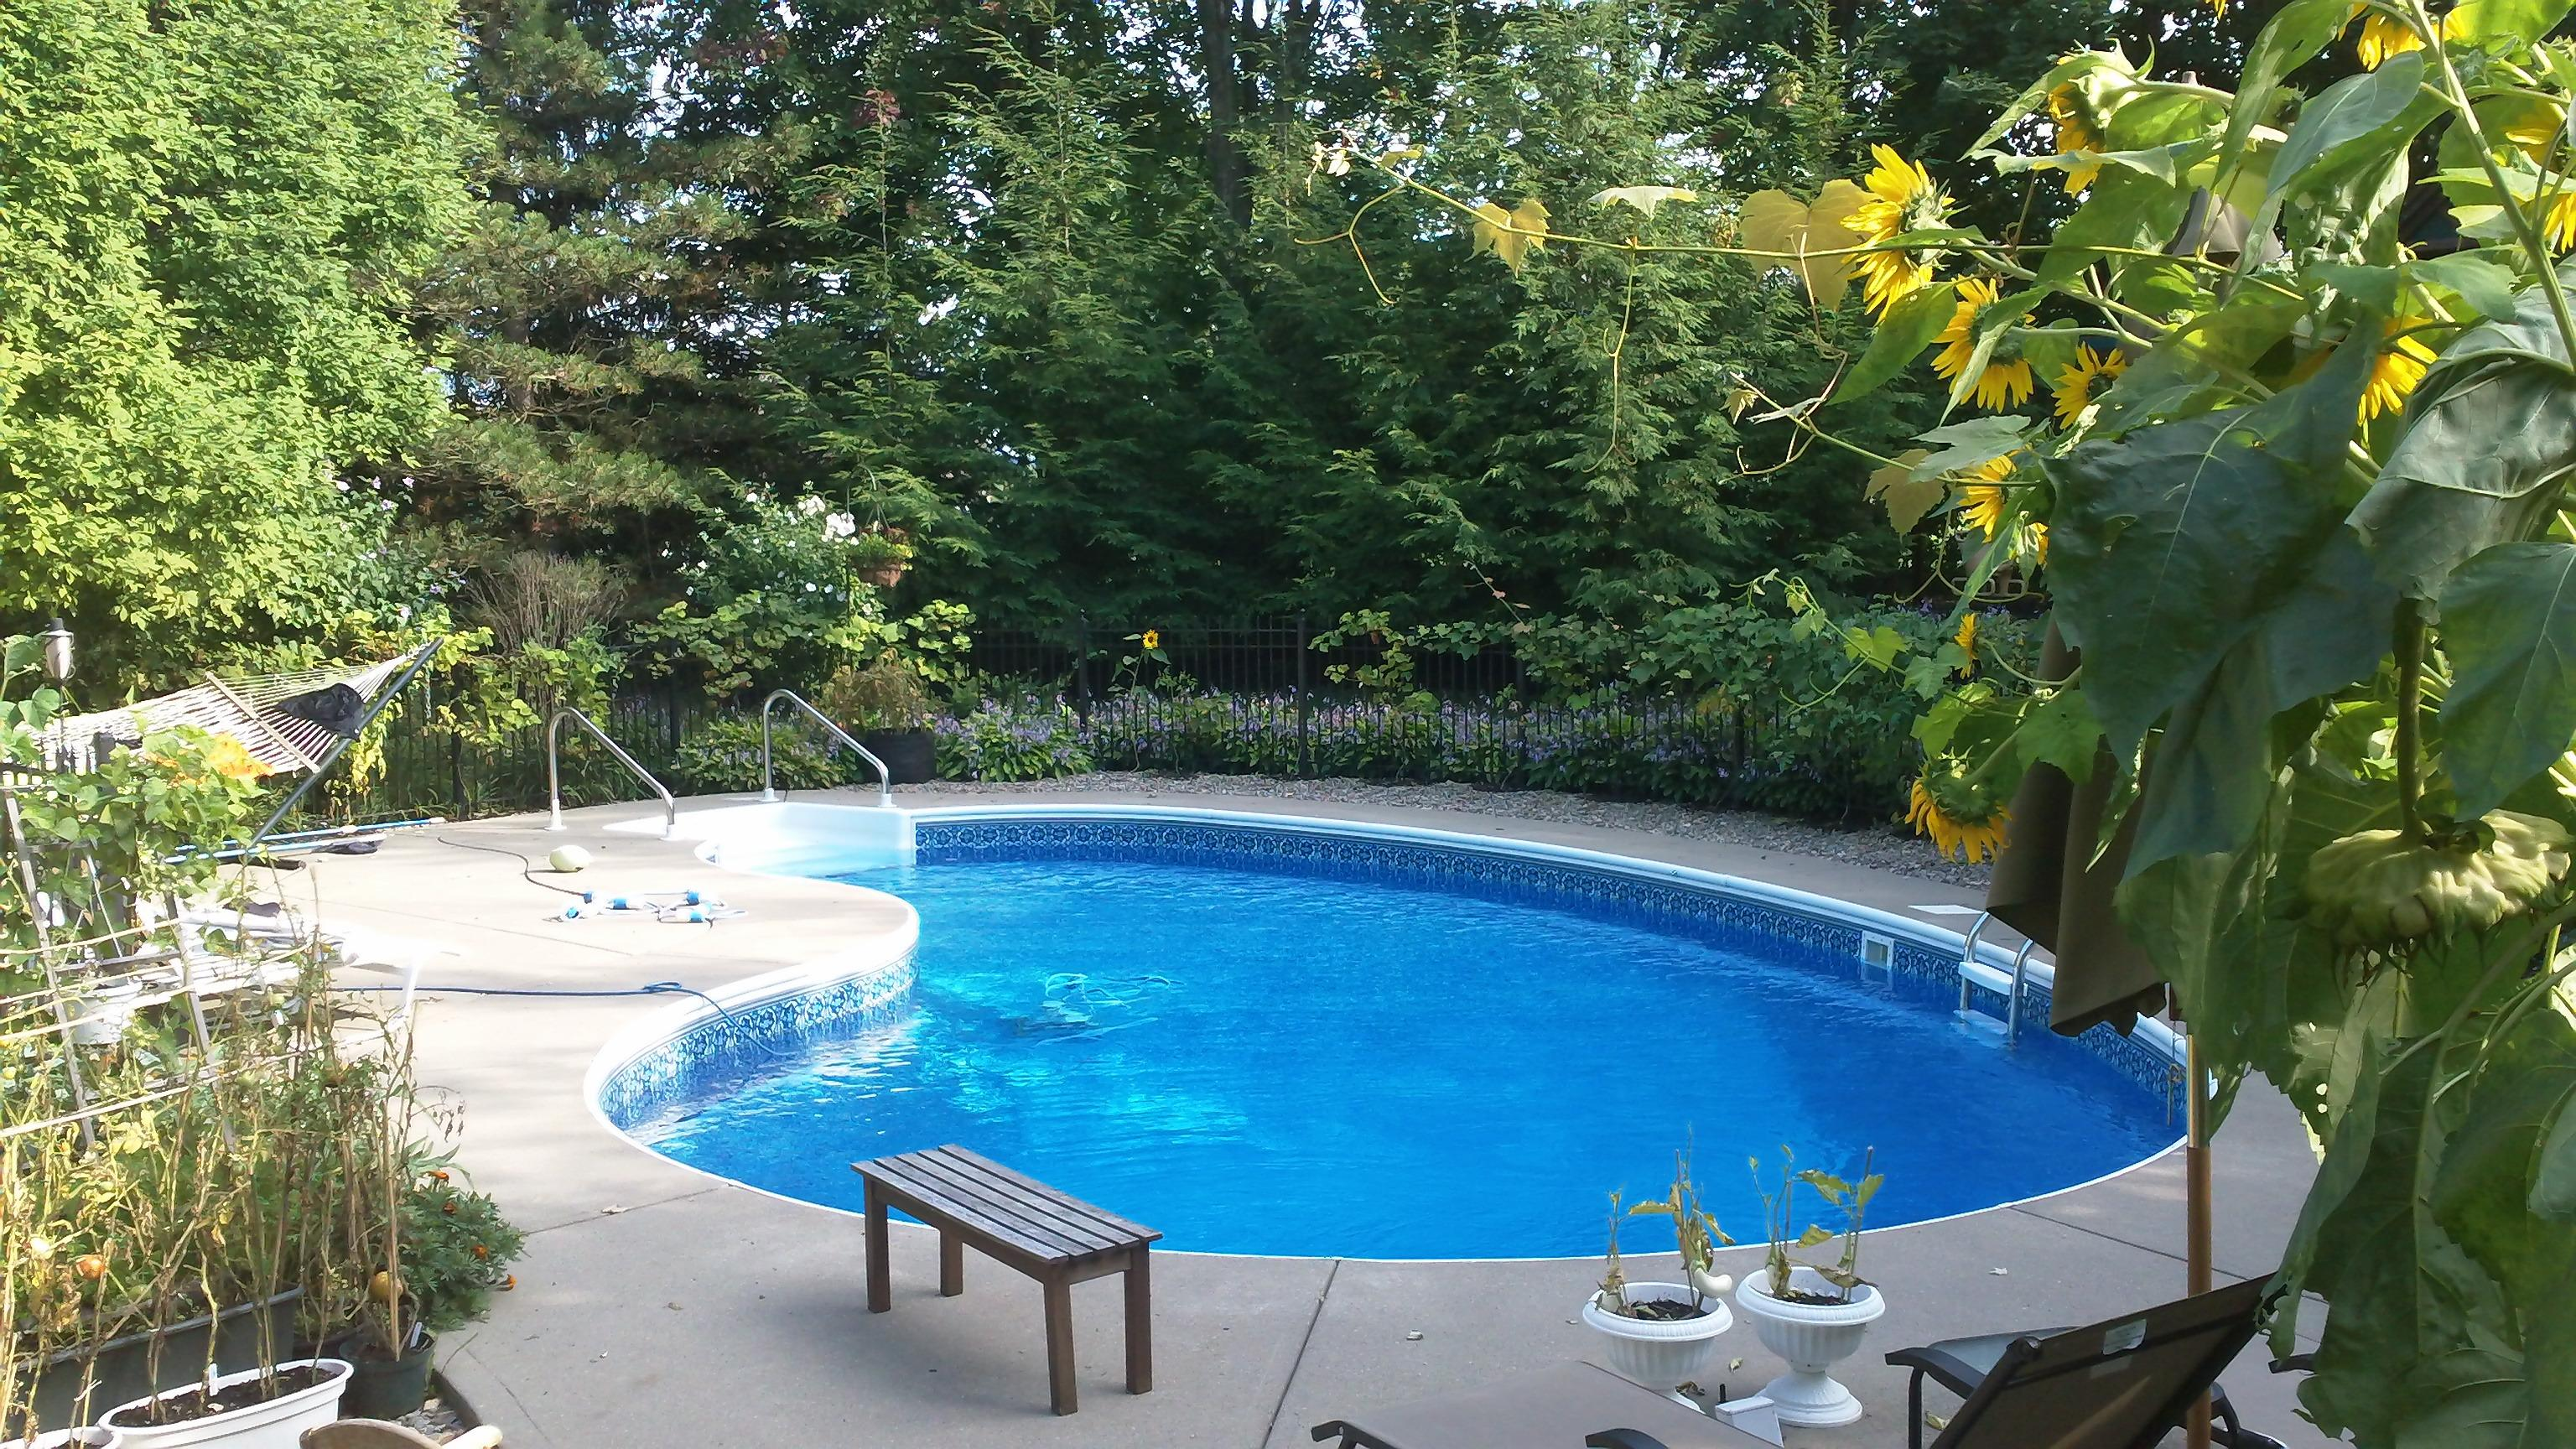 Coolwaters Pool And Spa Liverpool New York Ny